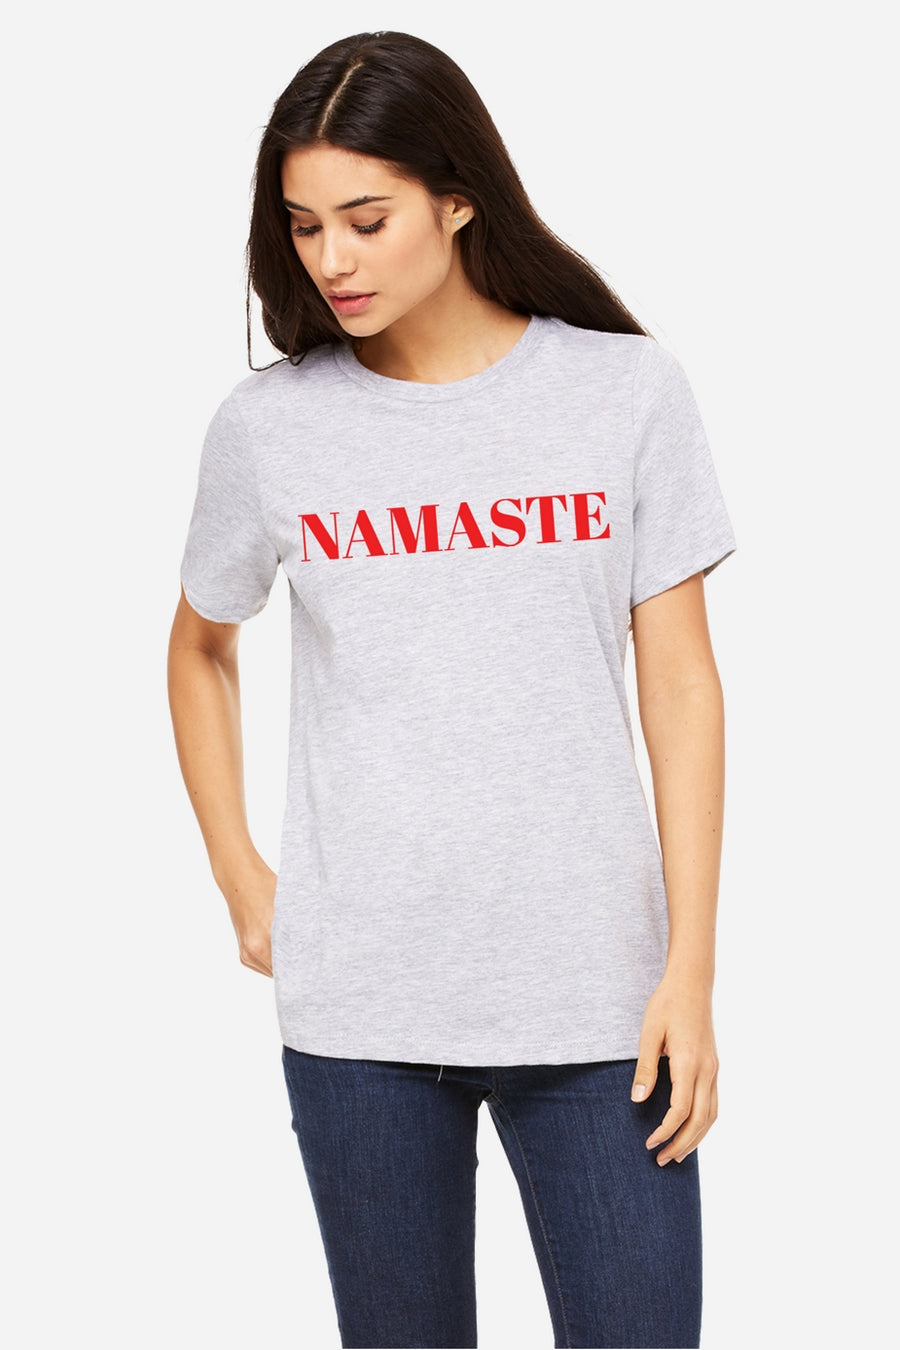 Six + Row Namaste Slogan White Tee